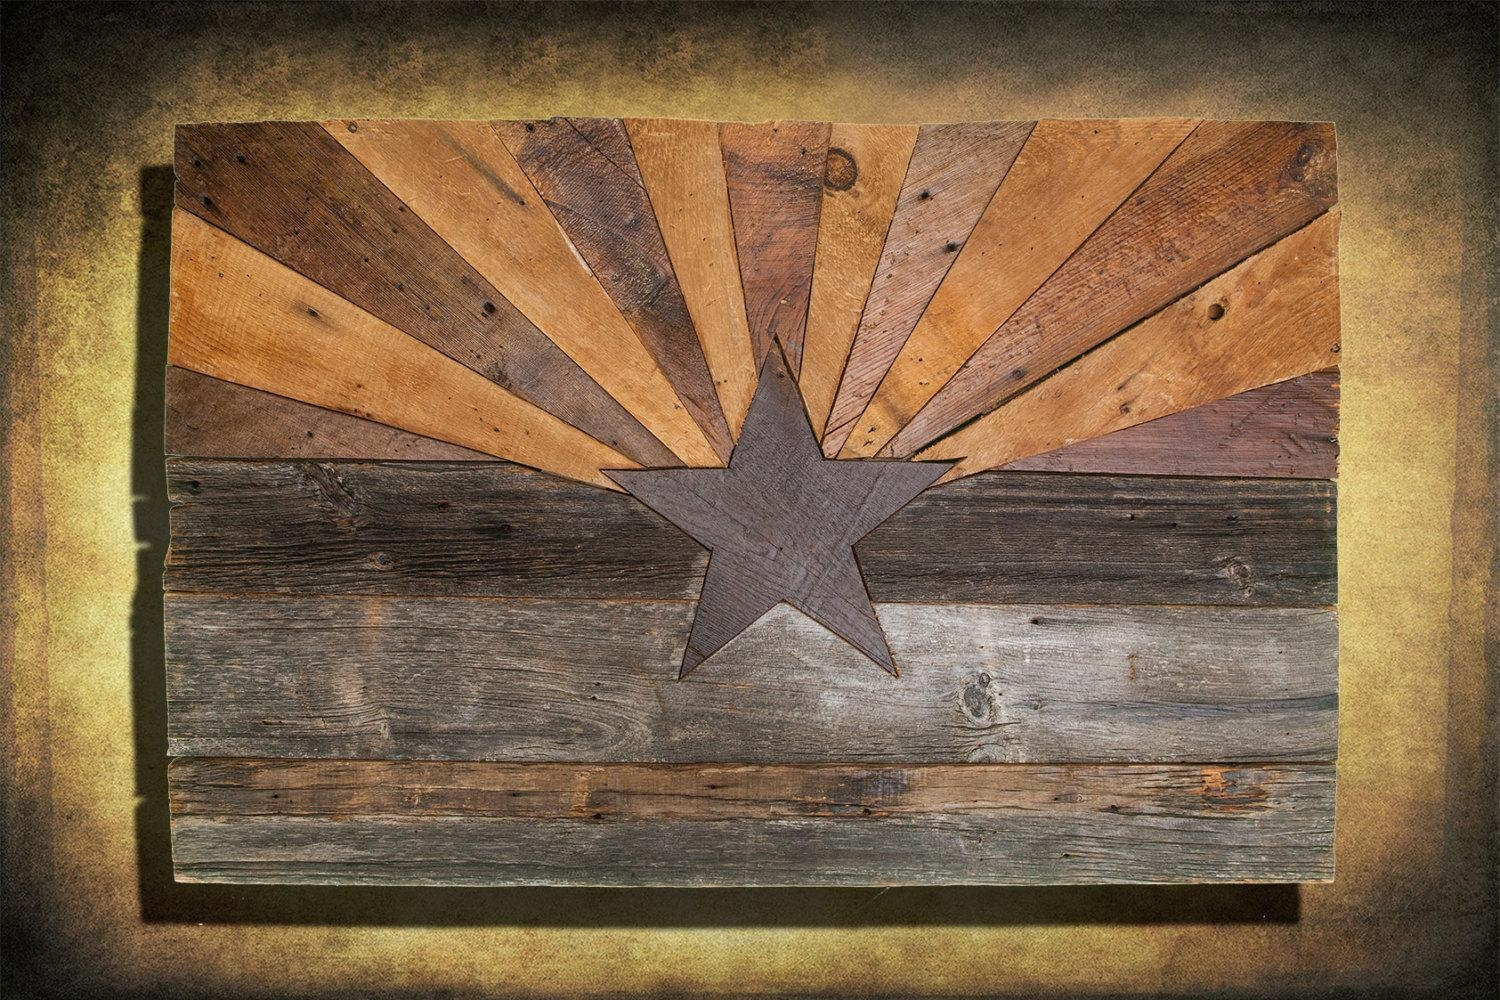 Barn Wood Arizona Flag, Handmade, Distressed Natural Wood, Vintage Pertaining To Natural Wood Wall Art (View 20 of 20)